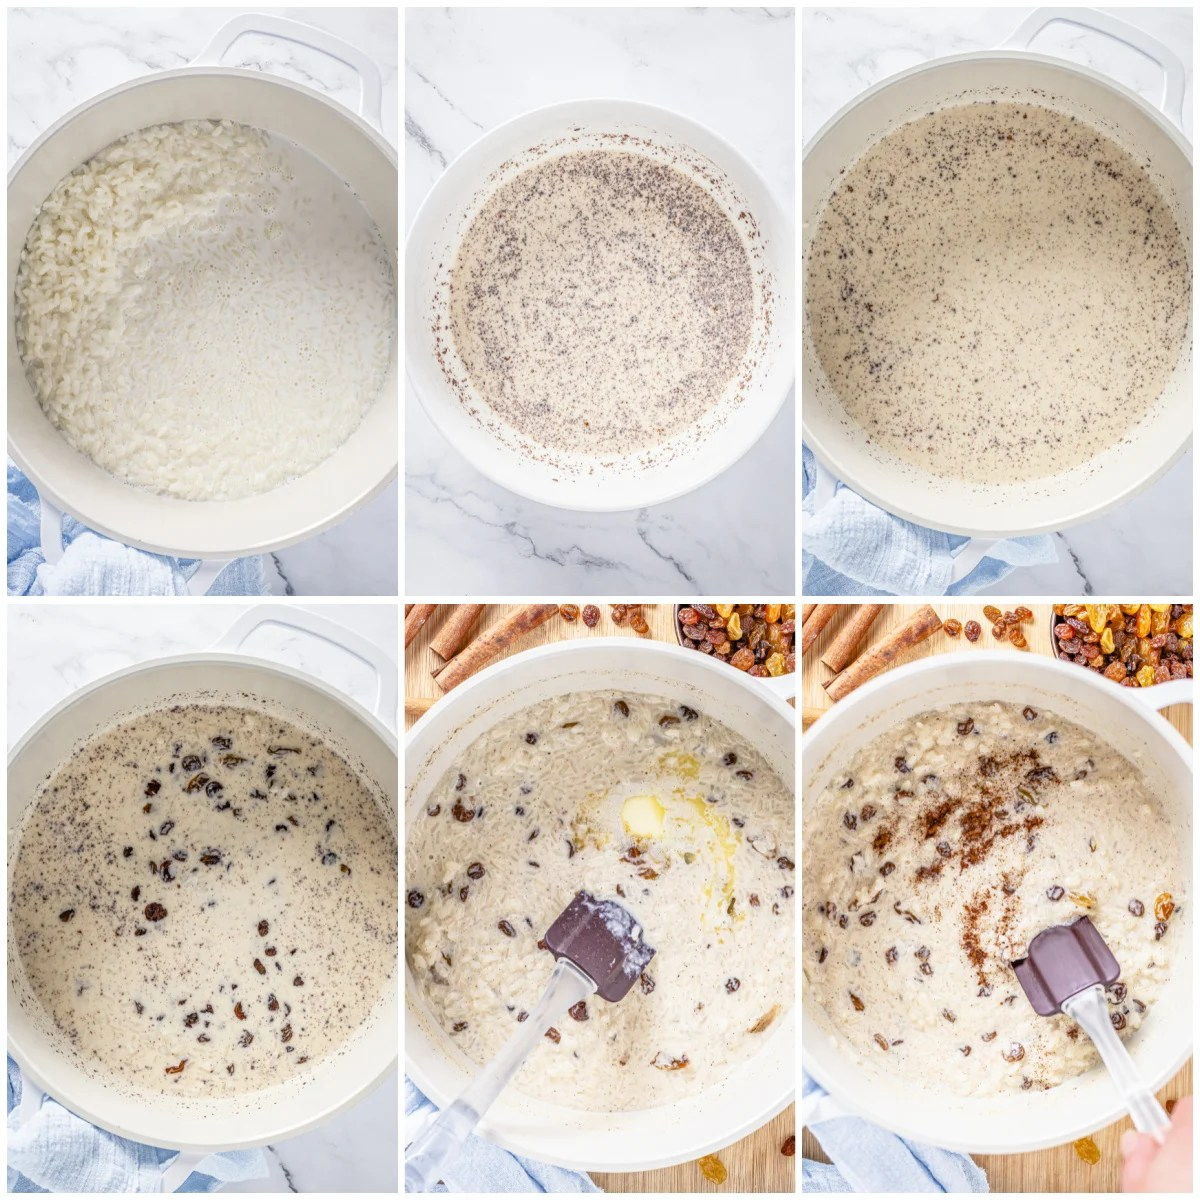 Step by step photos on how to make Rice Pudding with Cooked Rice